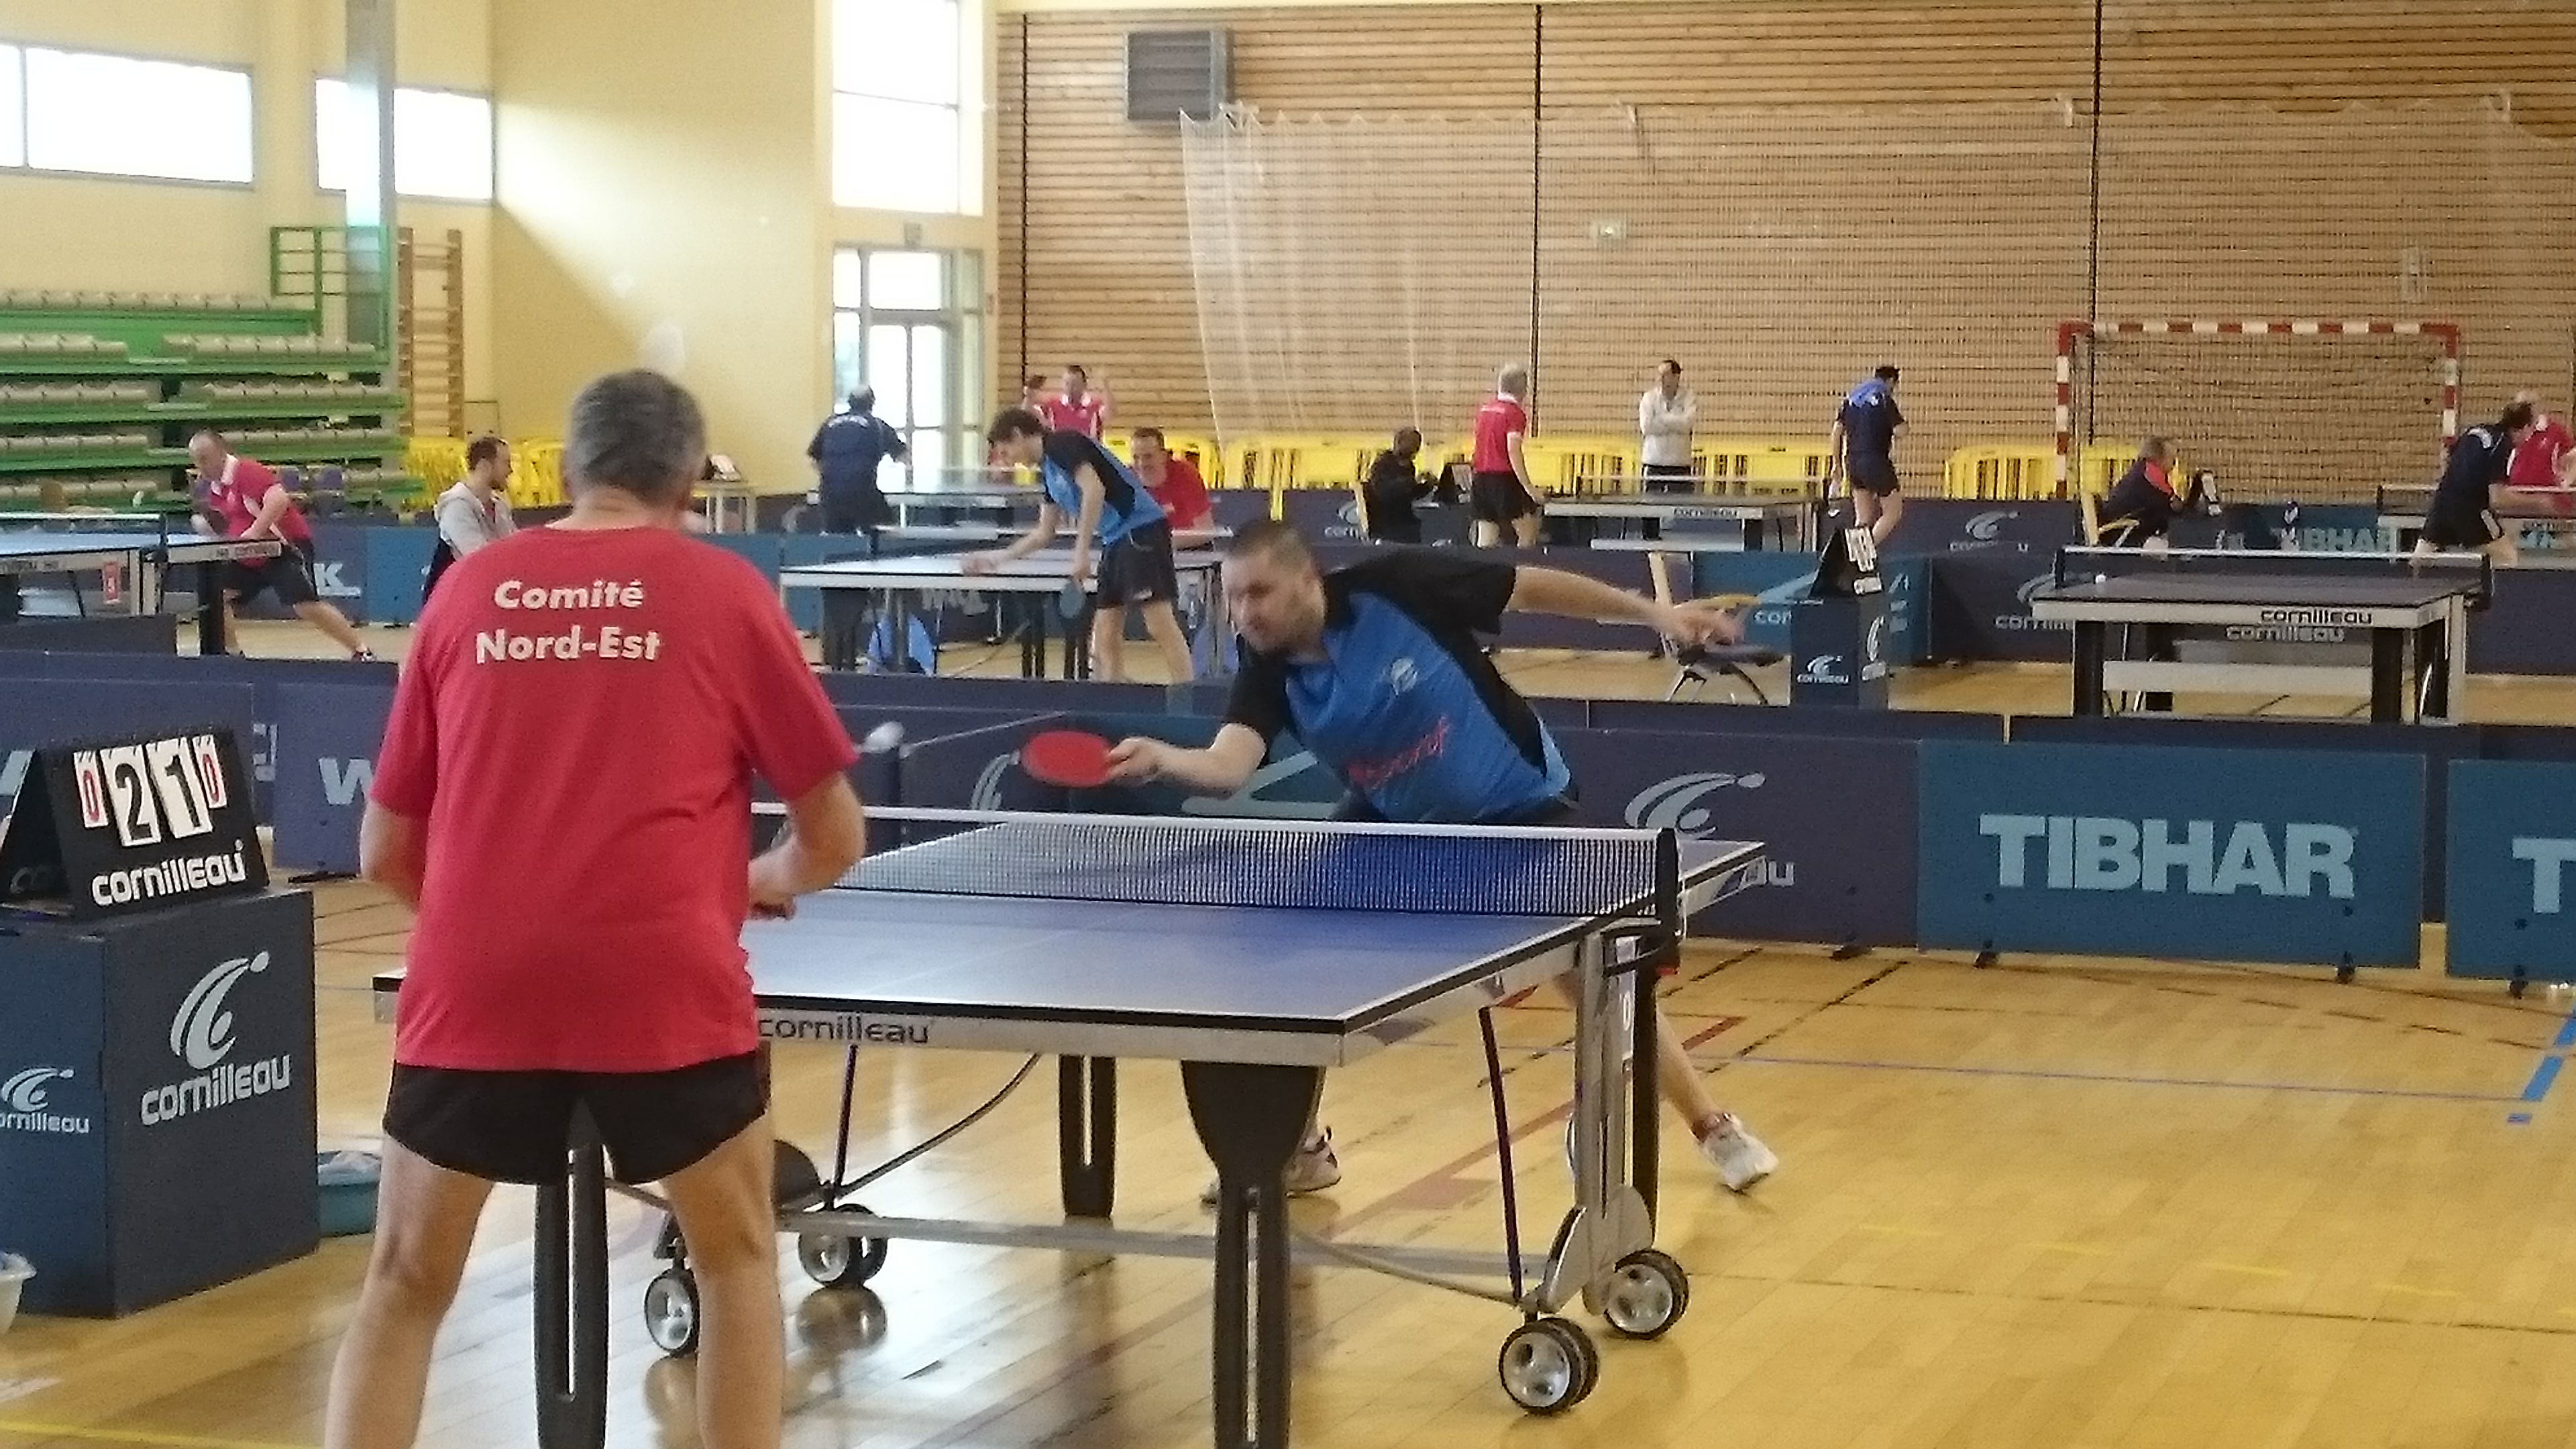 Calendrier tennis de table 2014 nord - Ligue du nord pas de calais de tennis de table ...